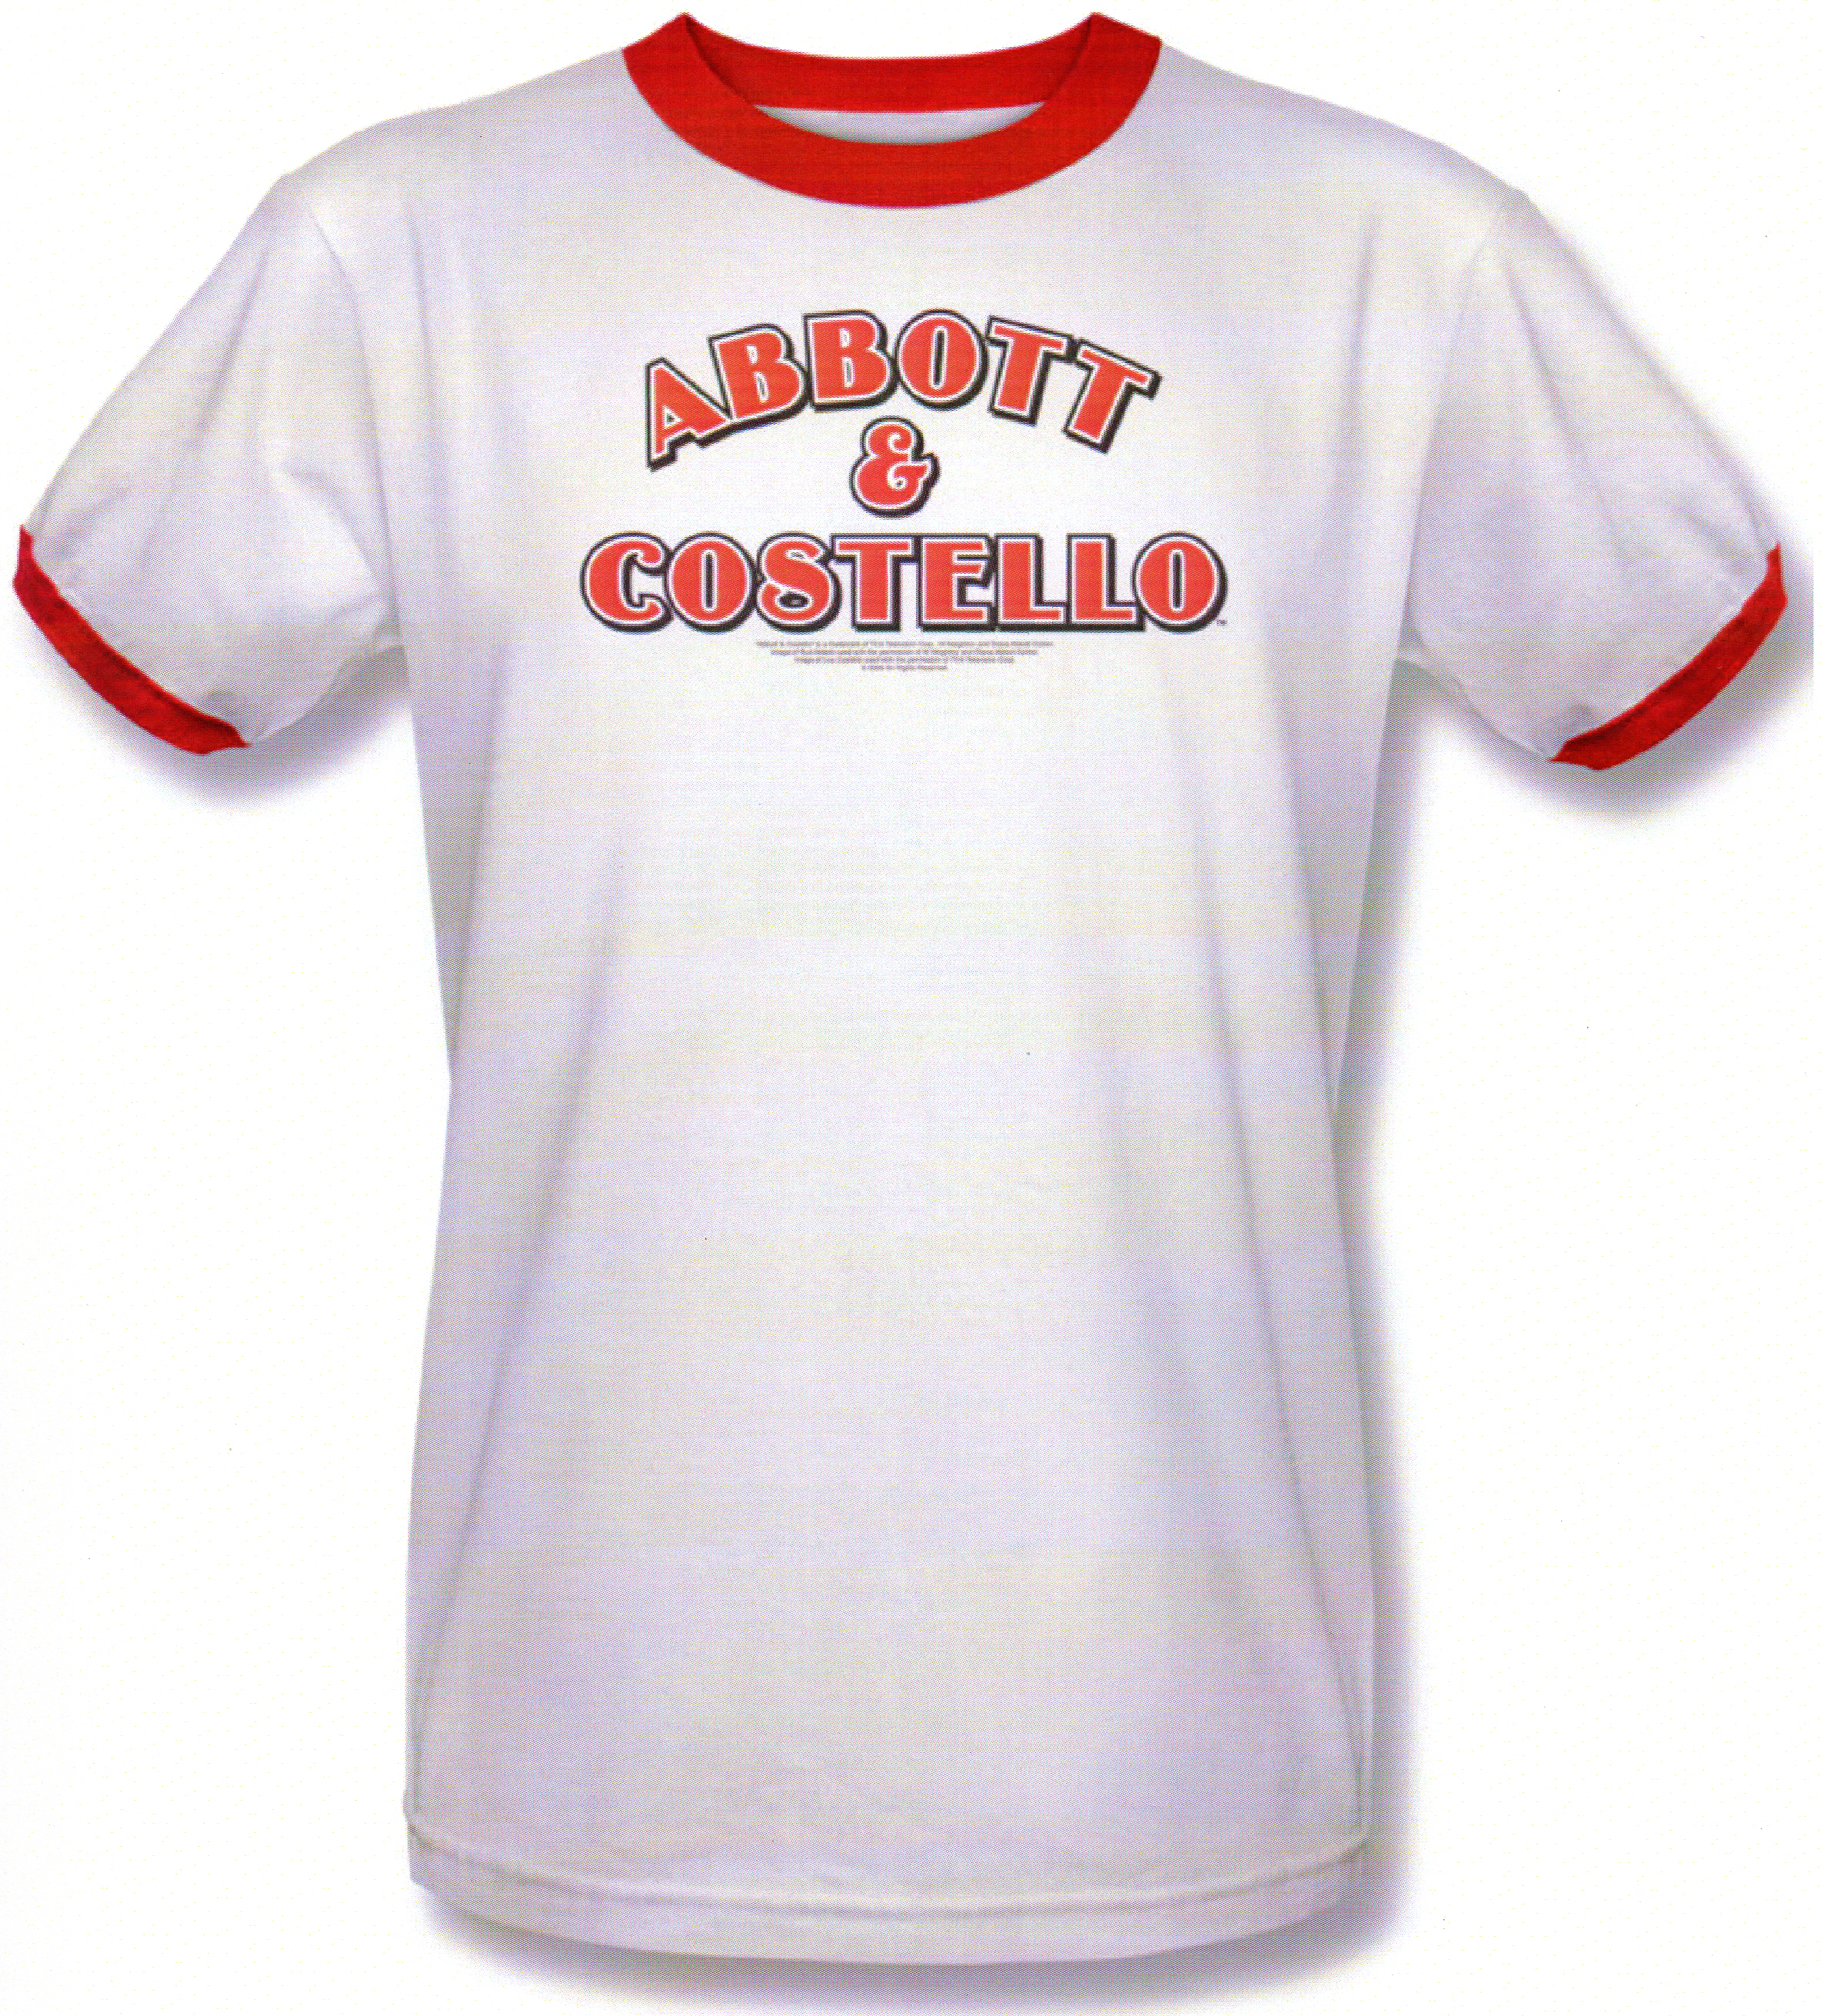 Abbott & Costello White With Red Piping Short Sleeve Tee